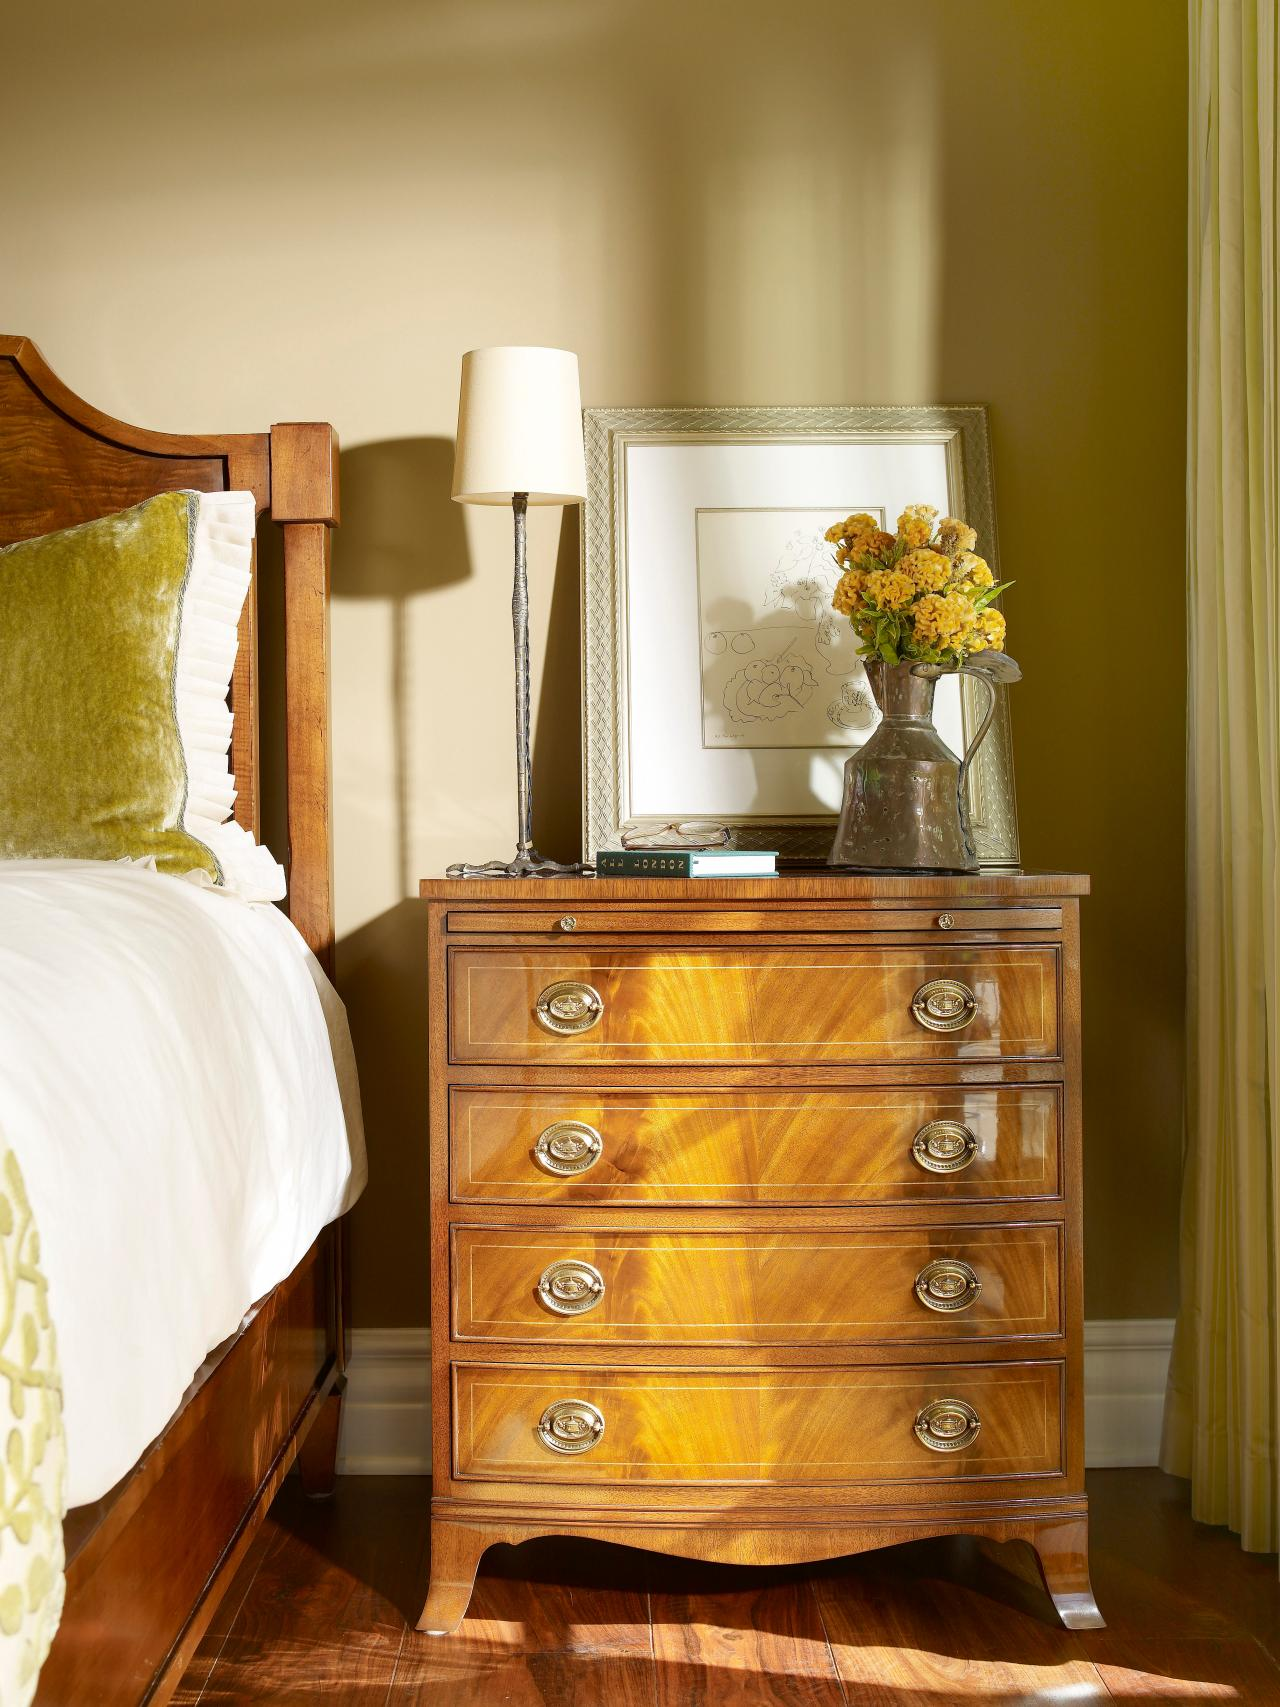 5 Expert Bedroom Storage IdeasHGTV